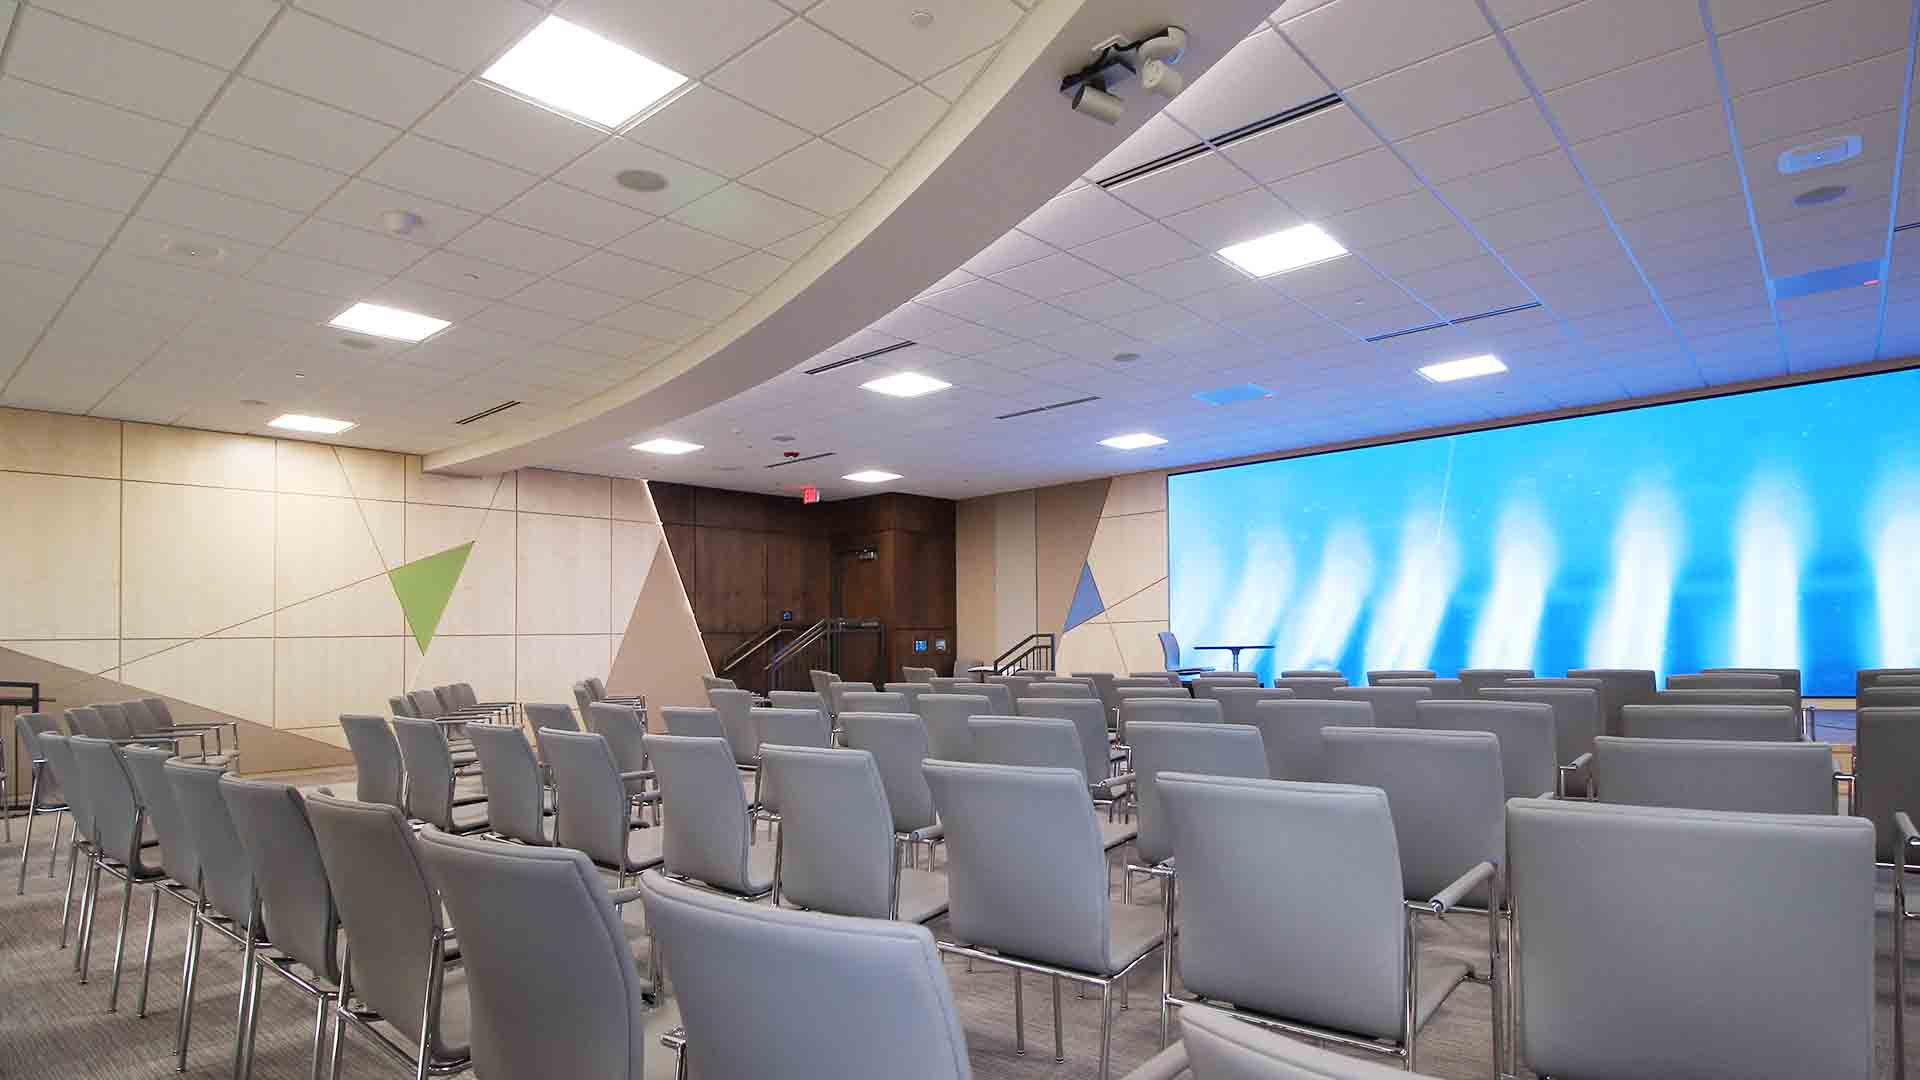 Conference center room screen with custom millwork showing varied stained woods and LED edge lighting as well as colored acoustic panels in patterns inspired by the Alliant Energy logo